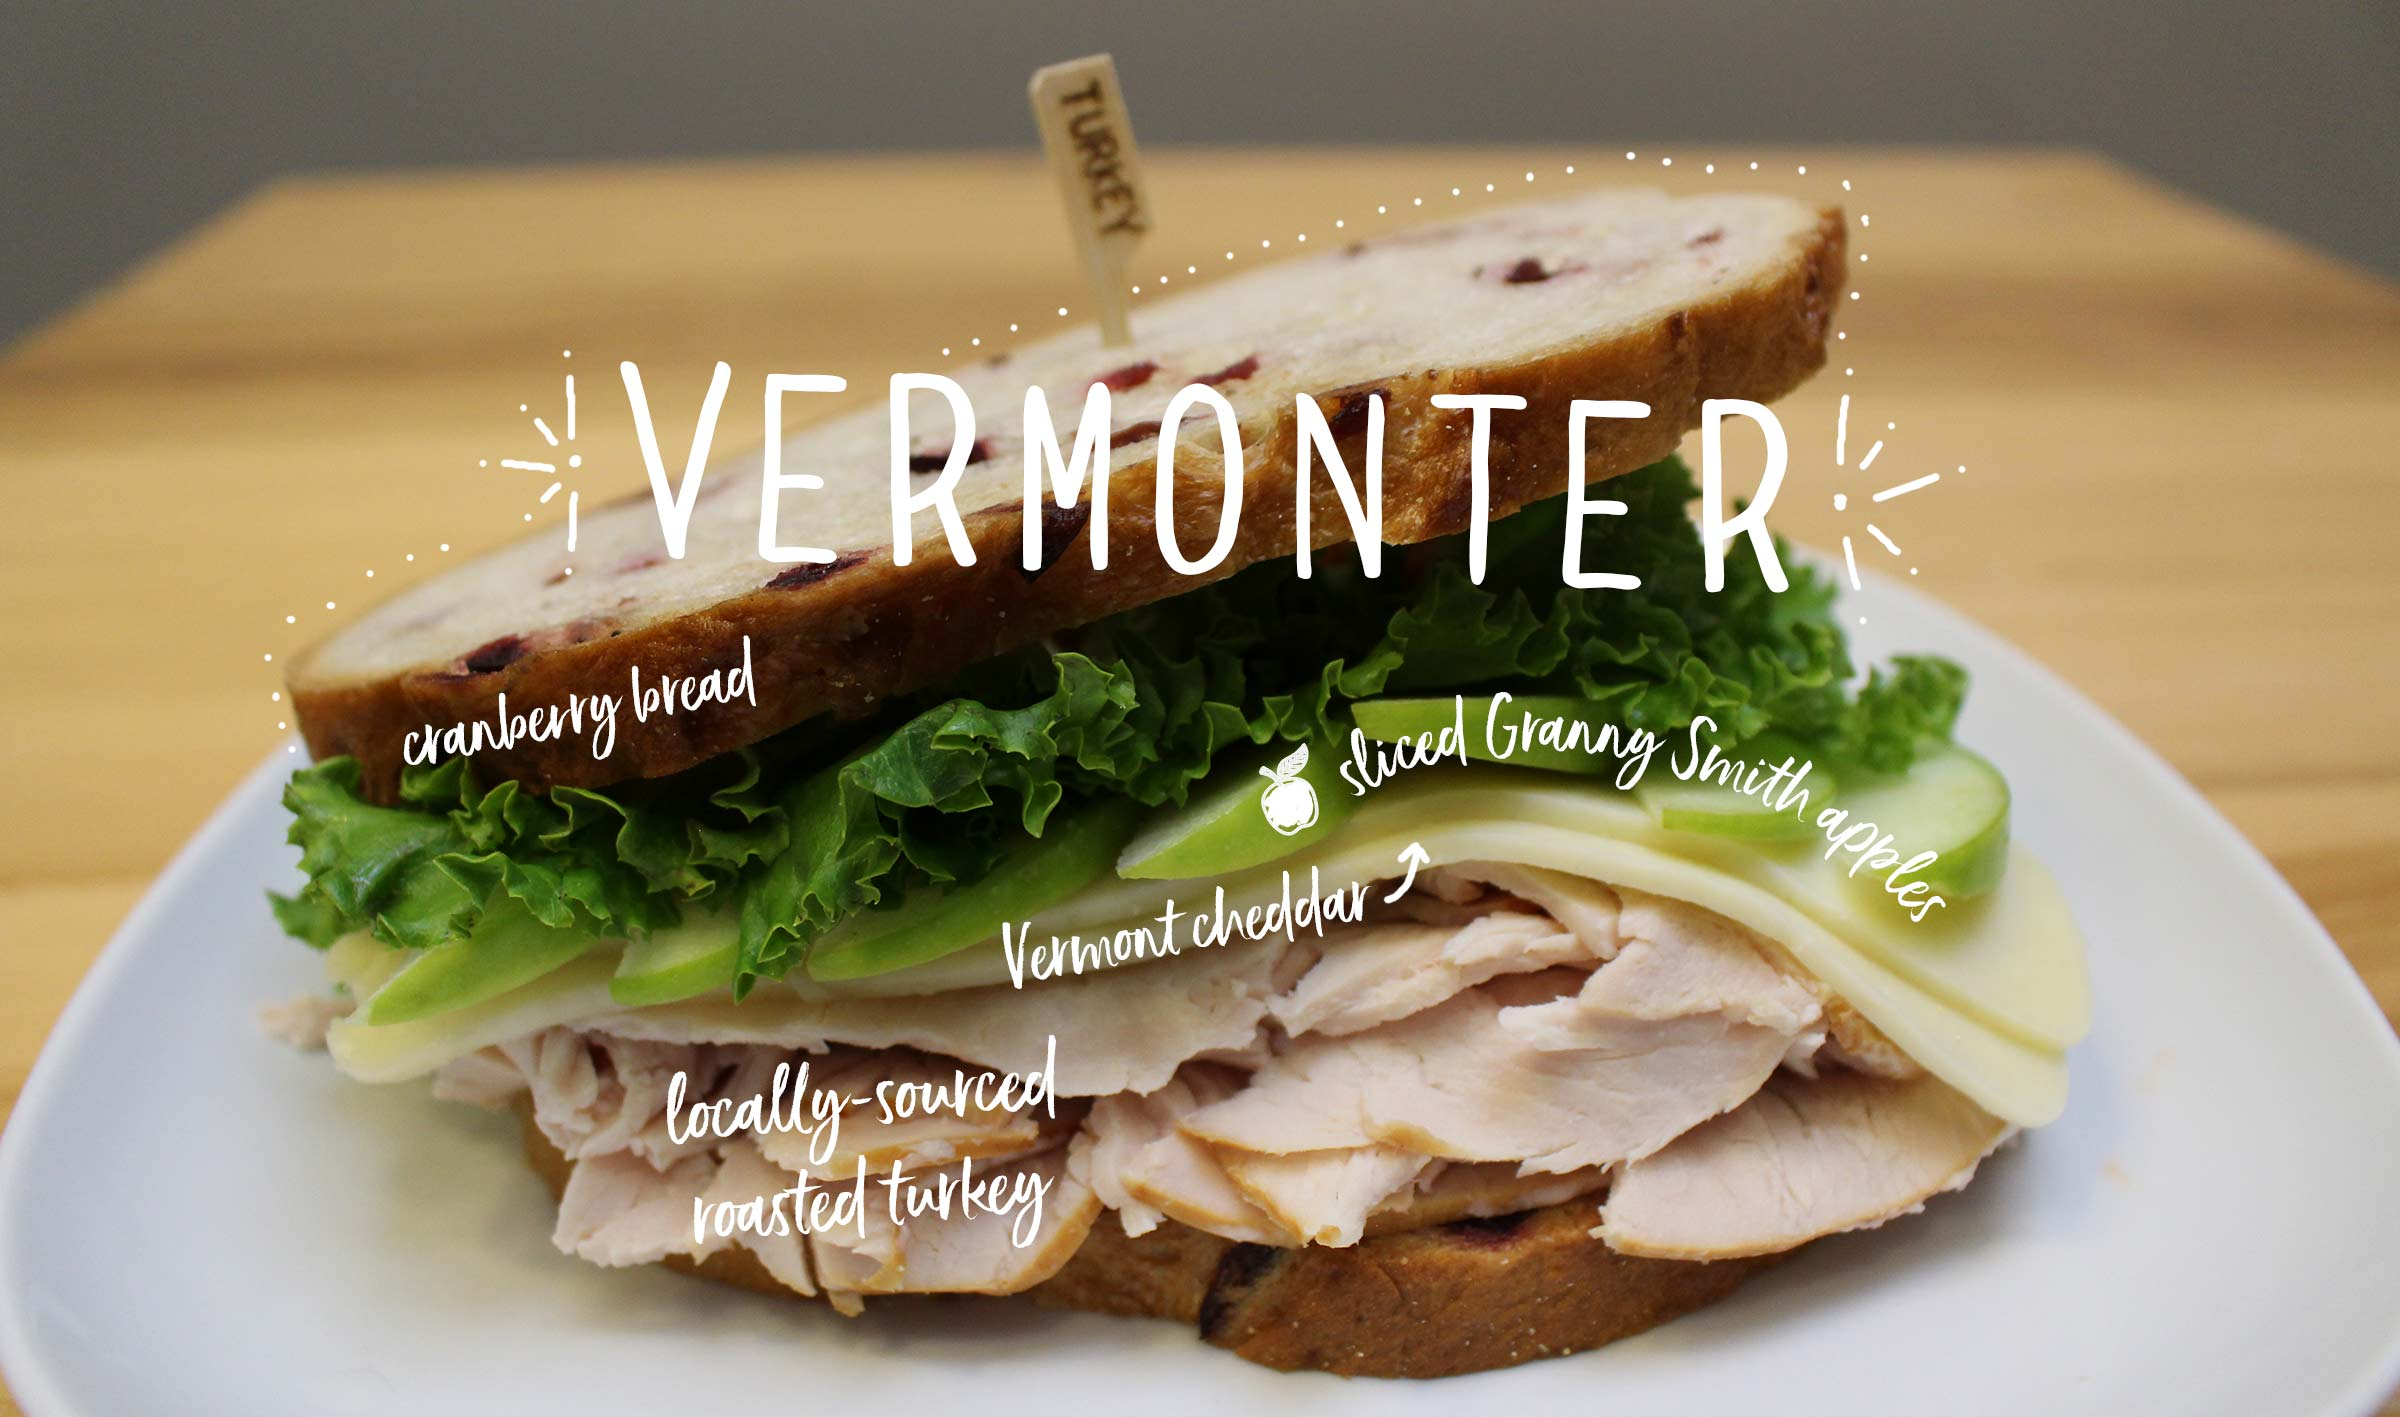 vermonter sandwich: sliced turkey, cheddar, and green apples on cranberry bread